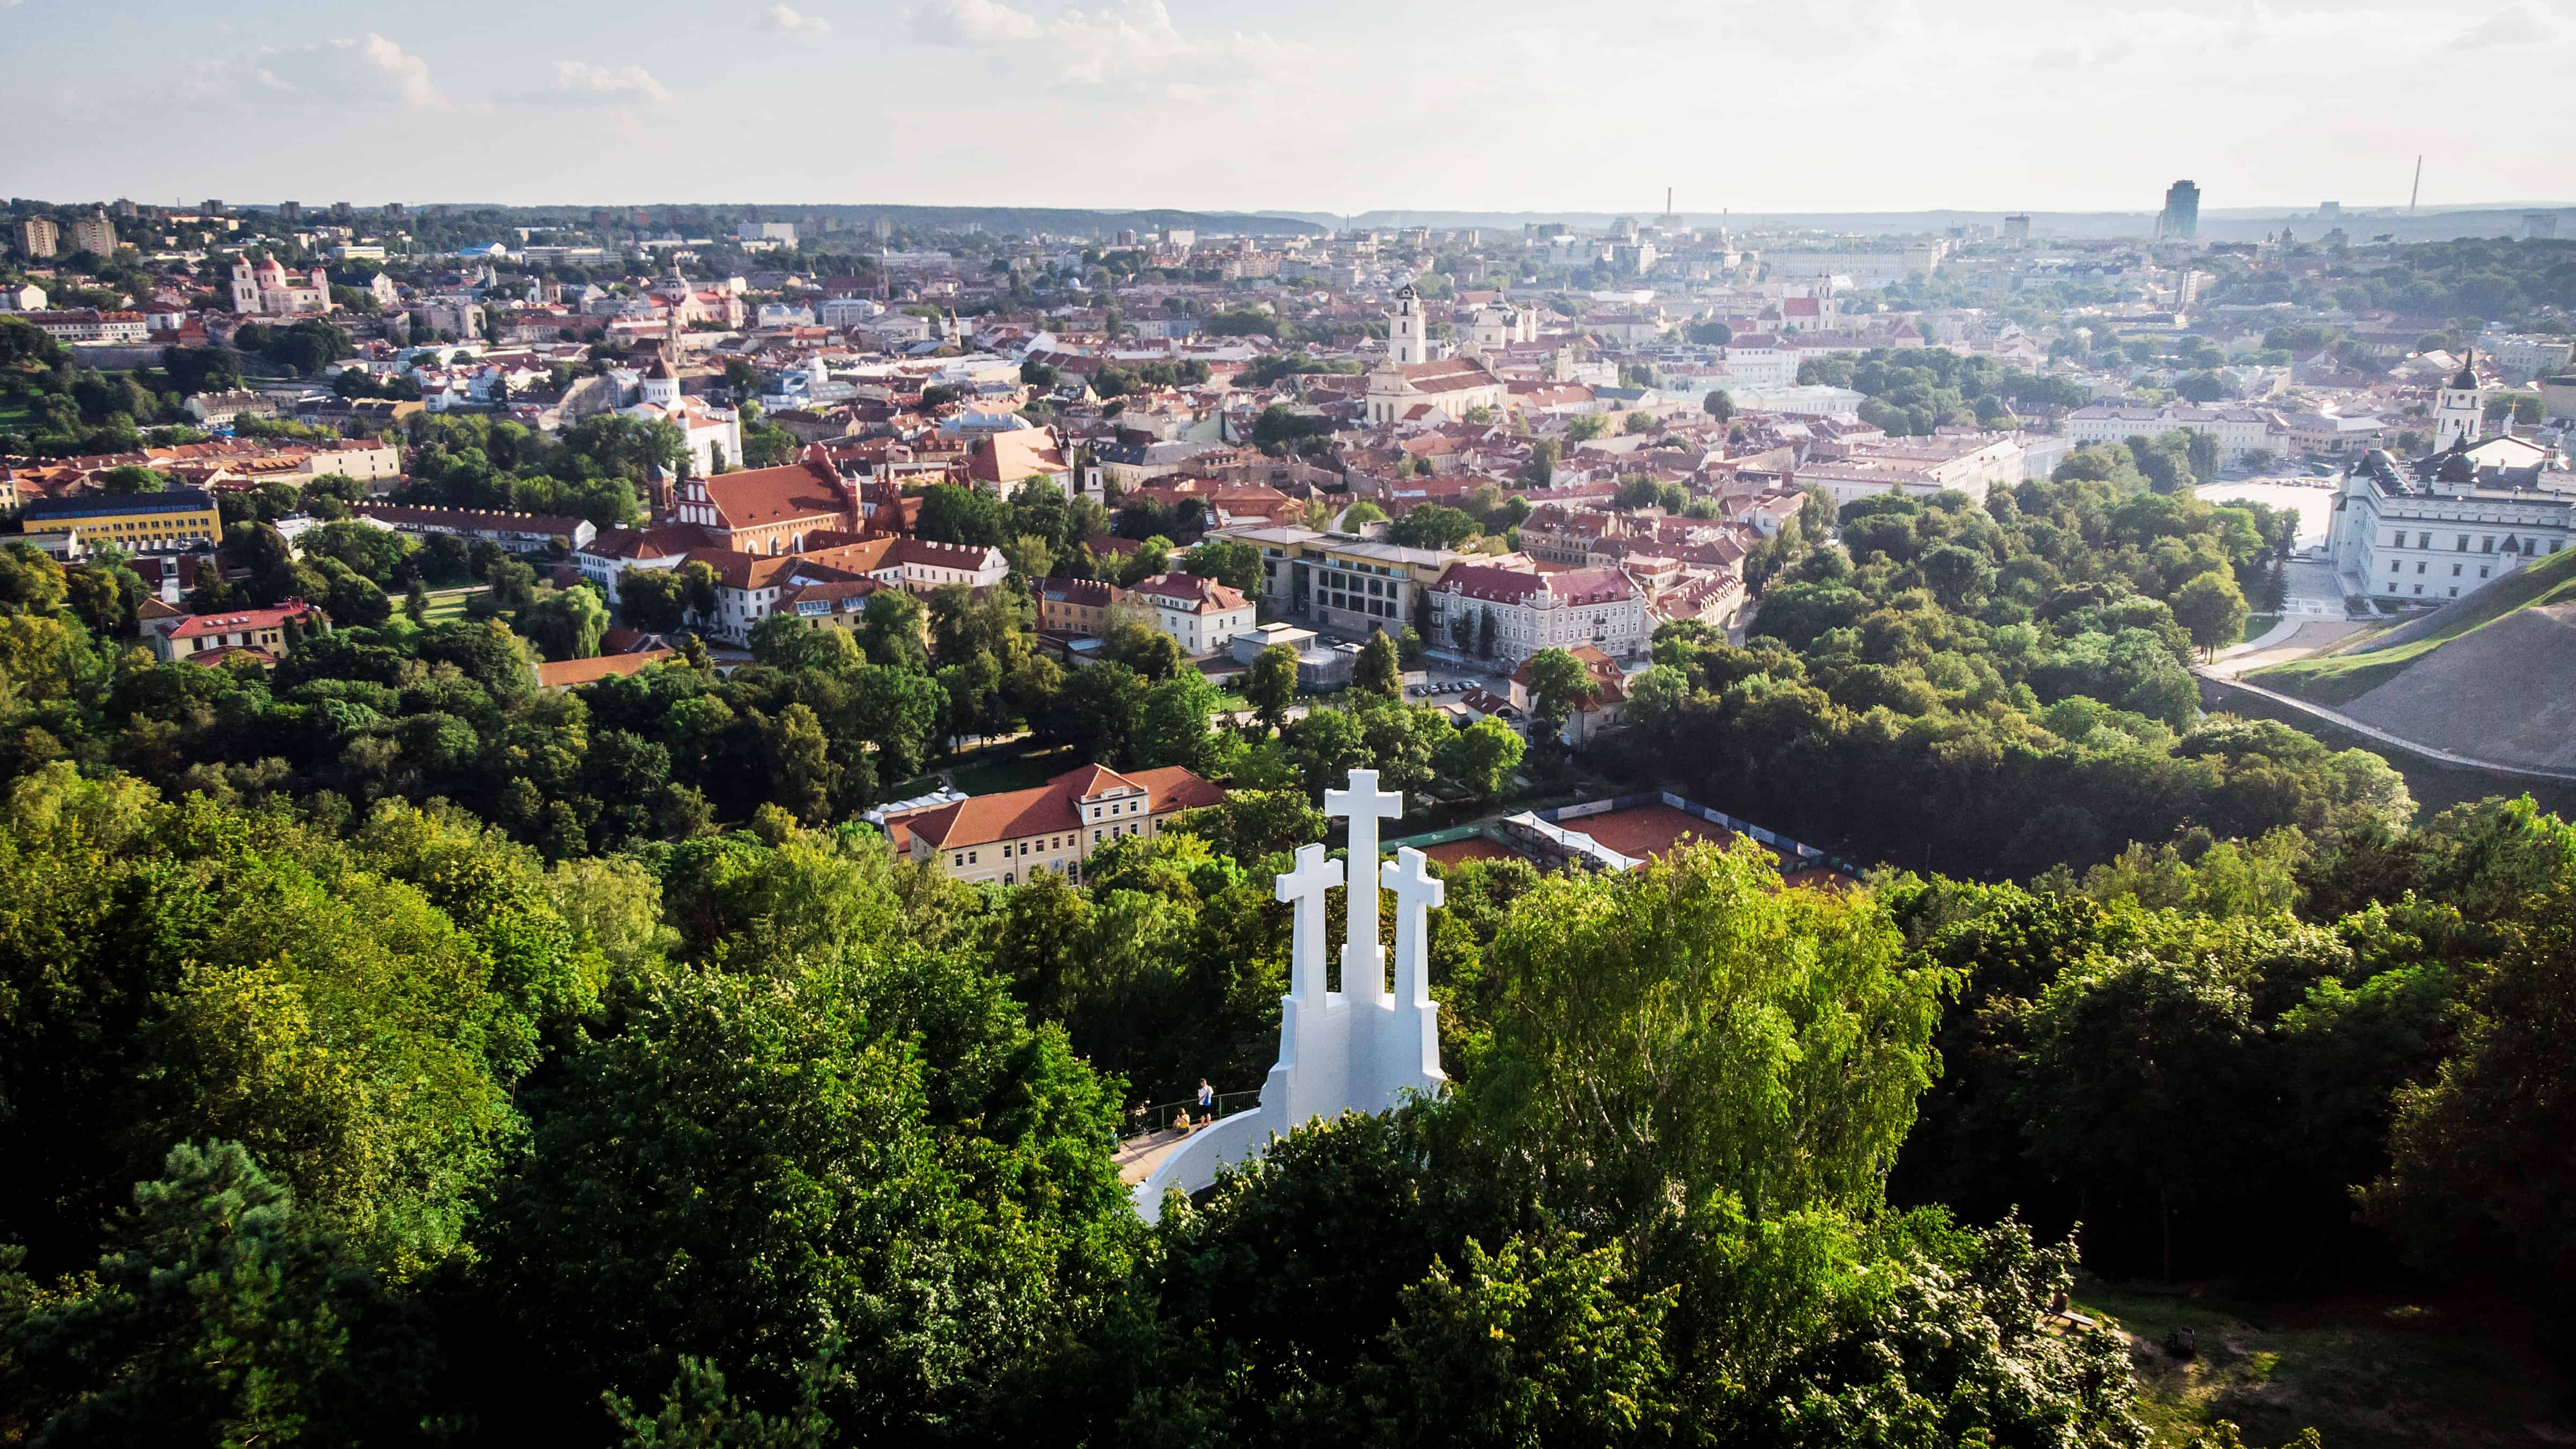 The panoramic view of Vilnius